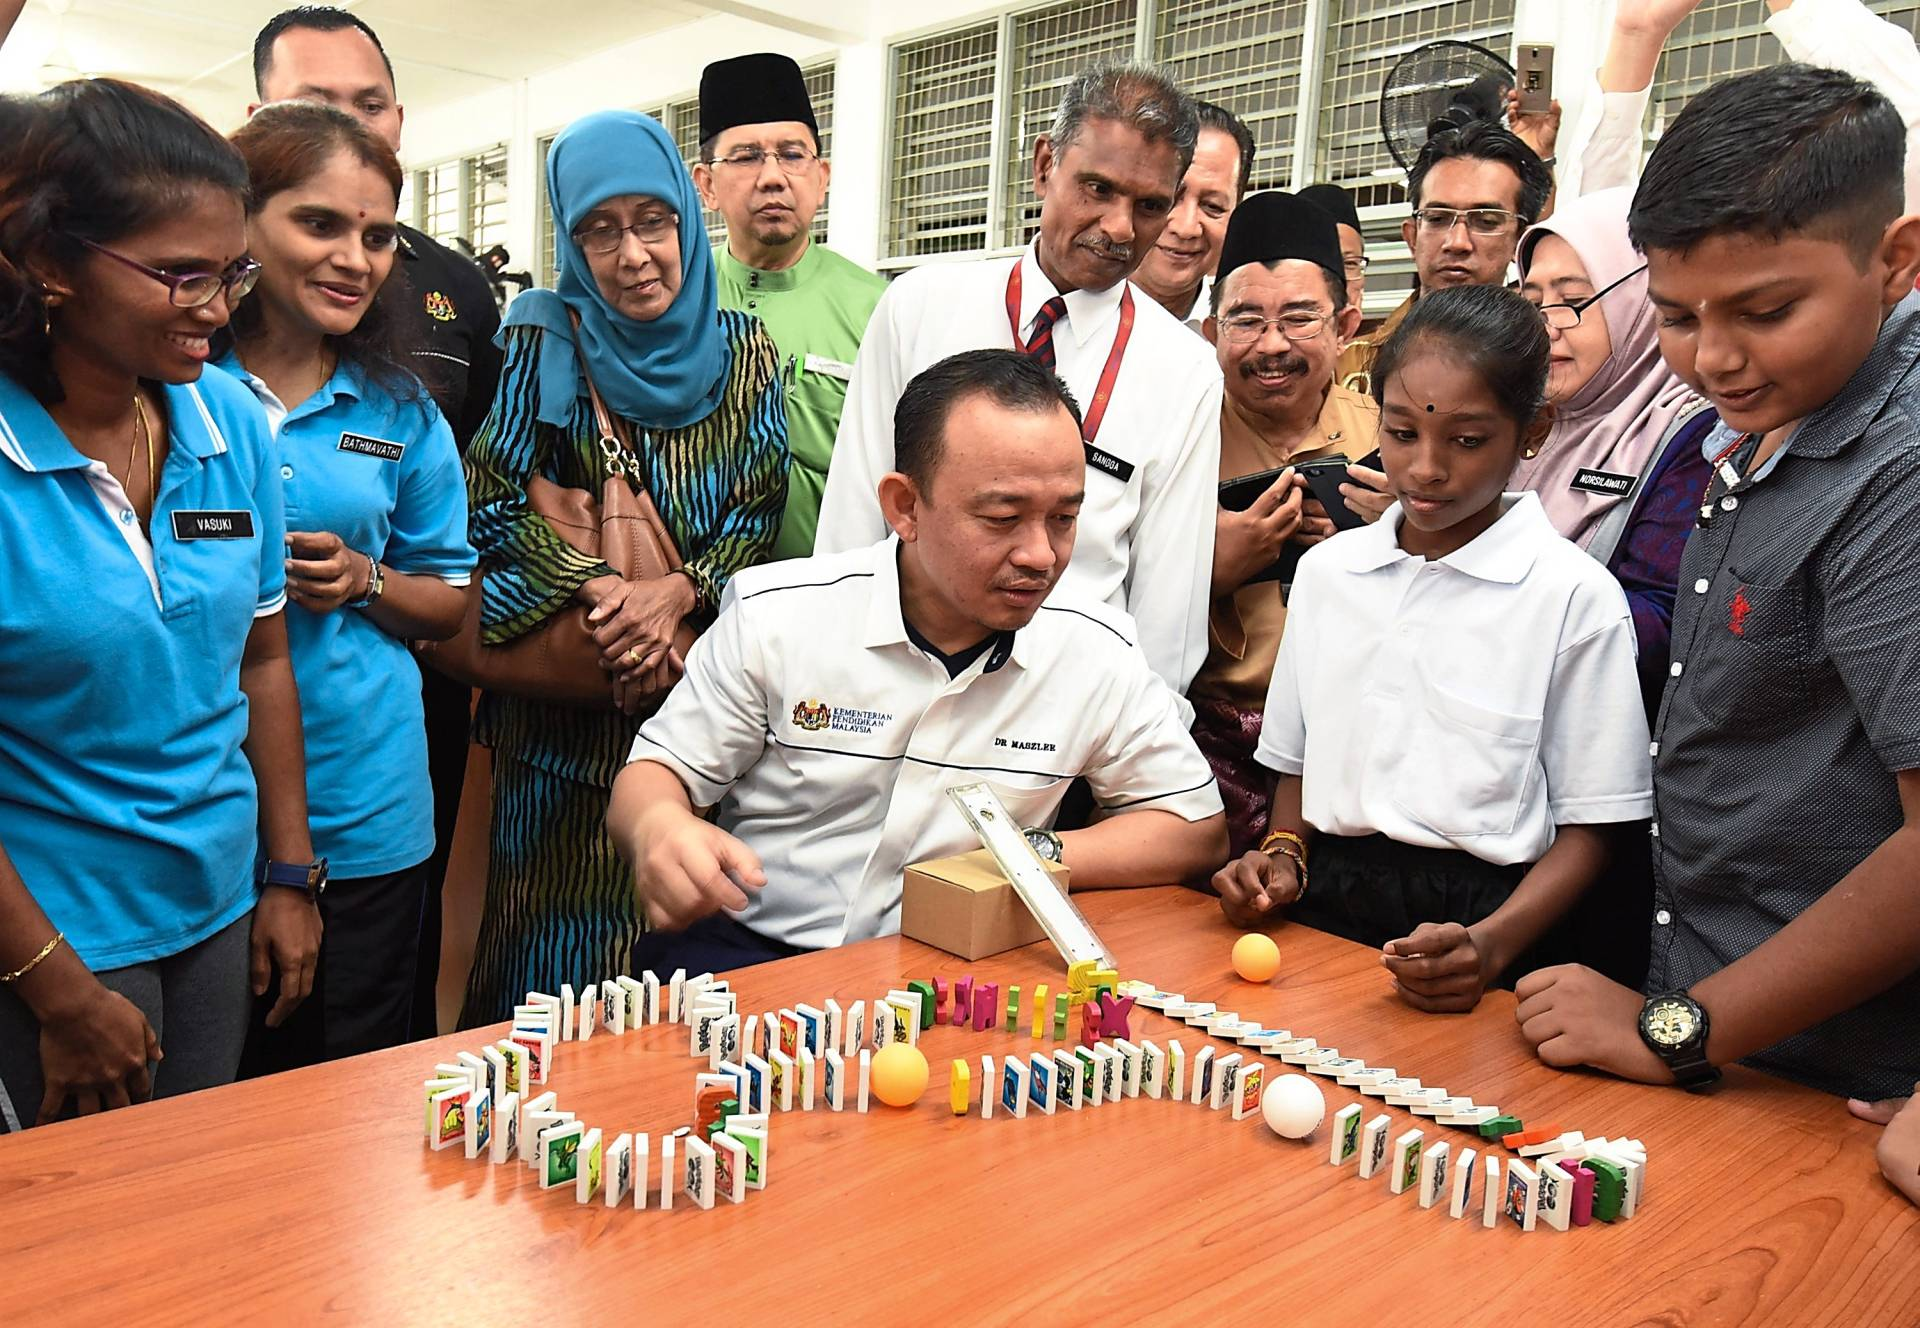 Maszlee (seated, centre) observing the demonstration on dominoes during a visit to SJK (T) Sungai Ara in Bayan Lepas, Penang.